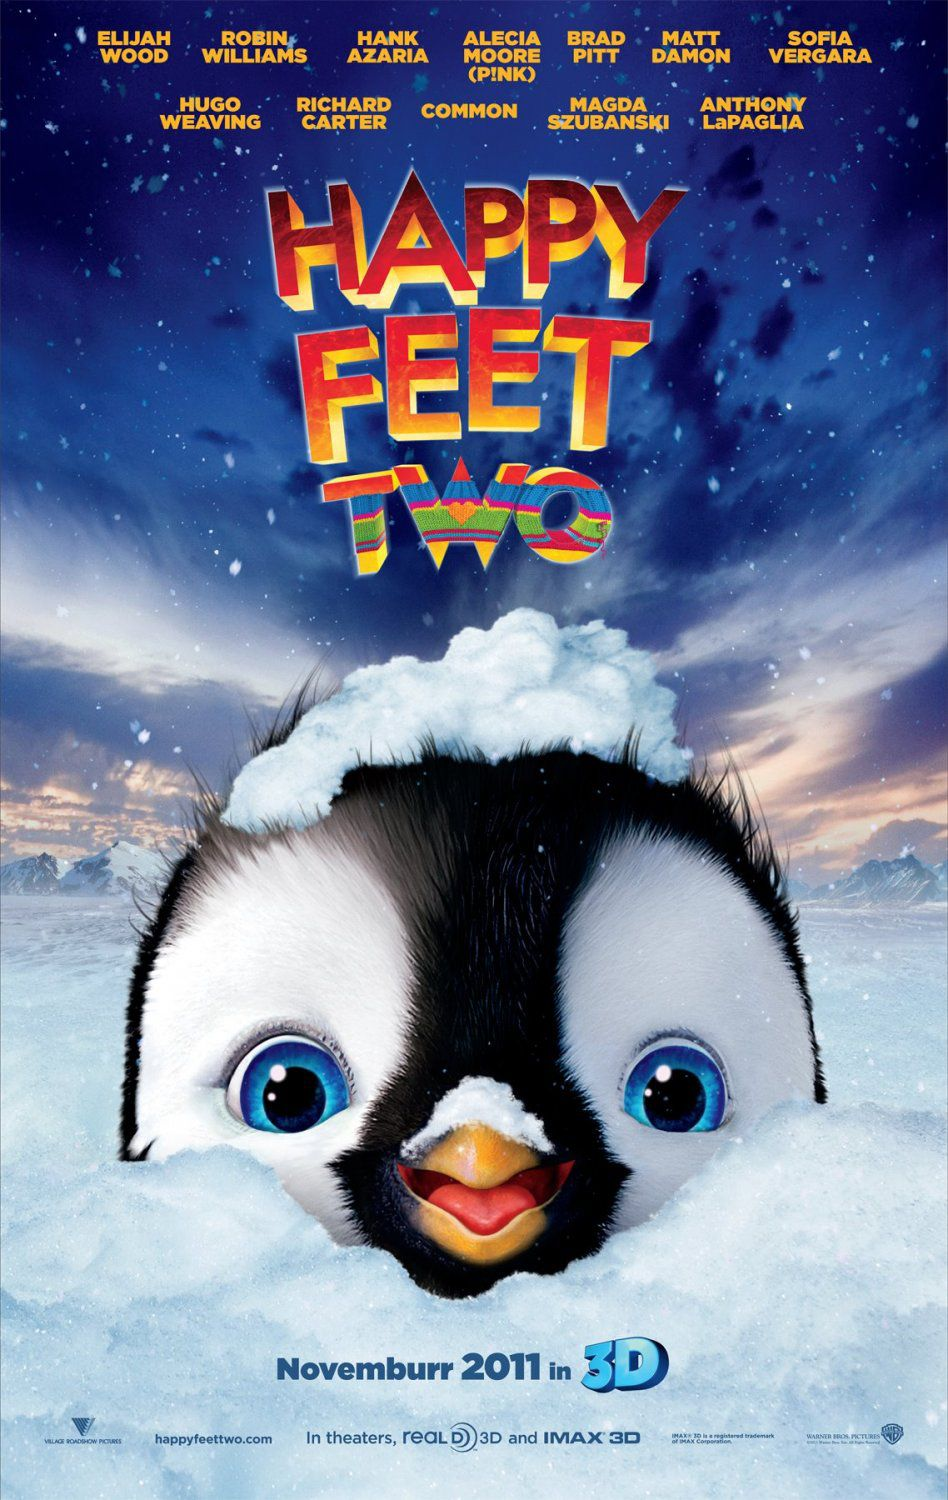 Happy Feet 2 - film poster